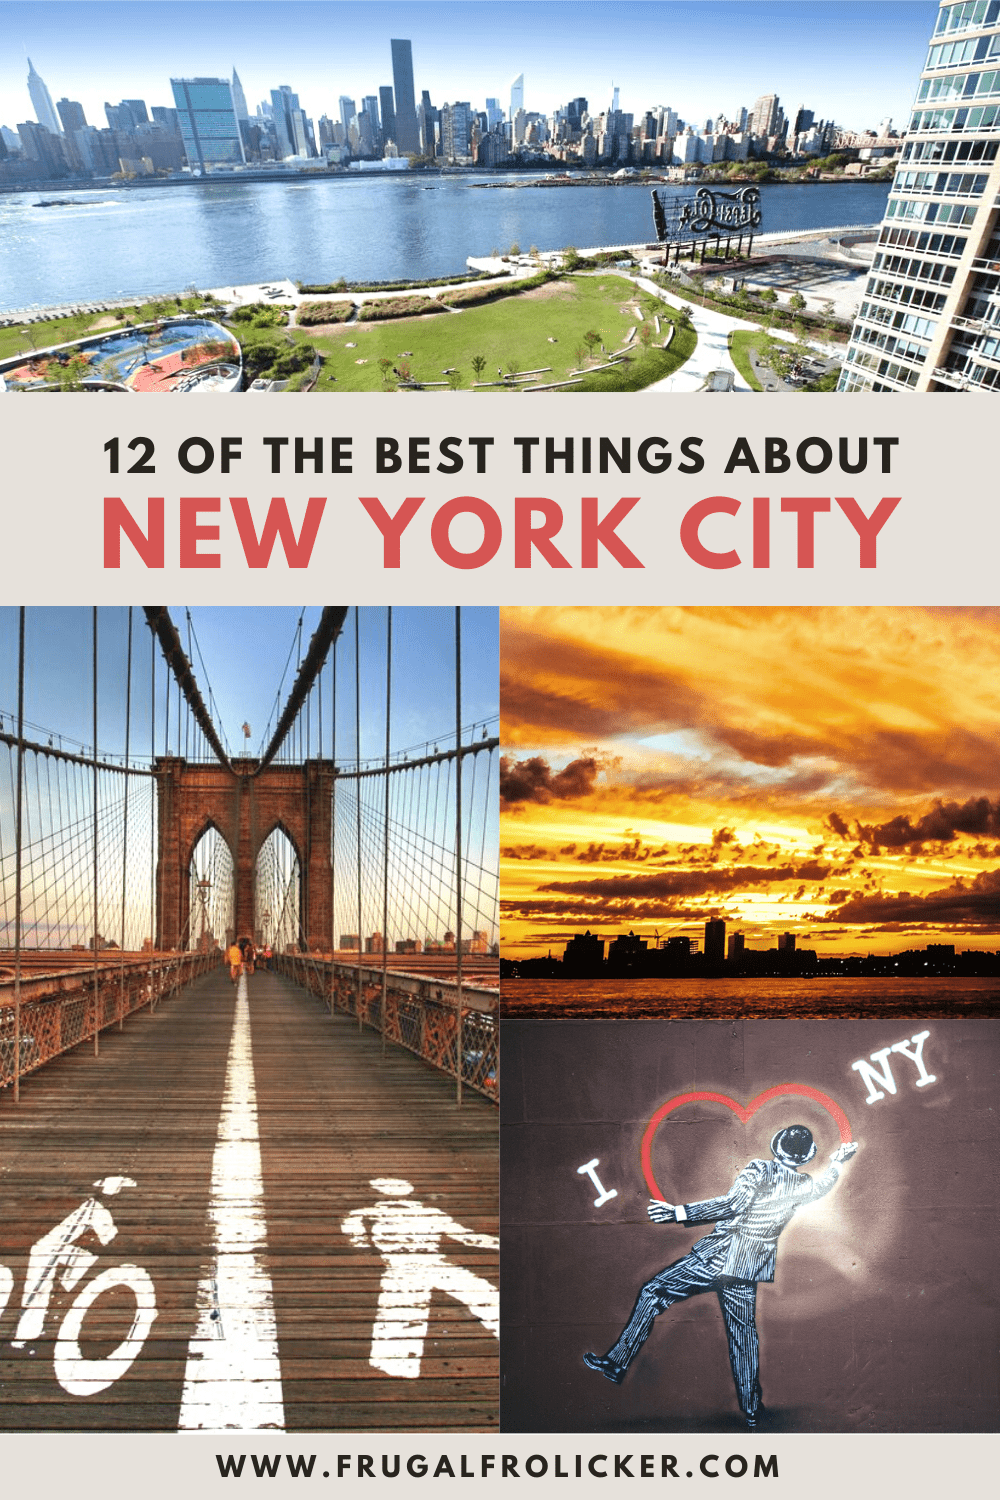 The Best Things About New York City